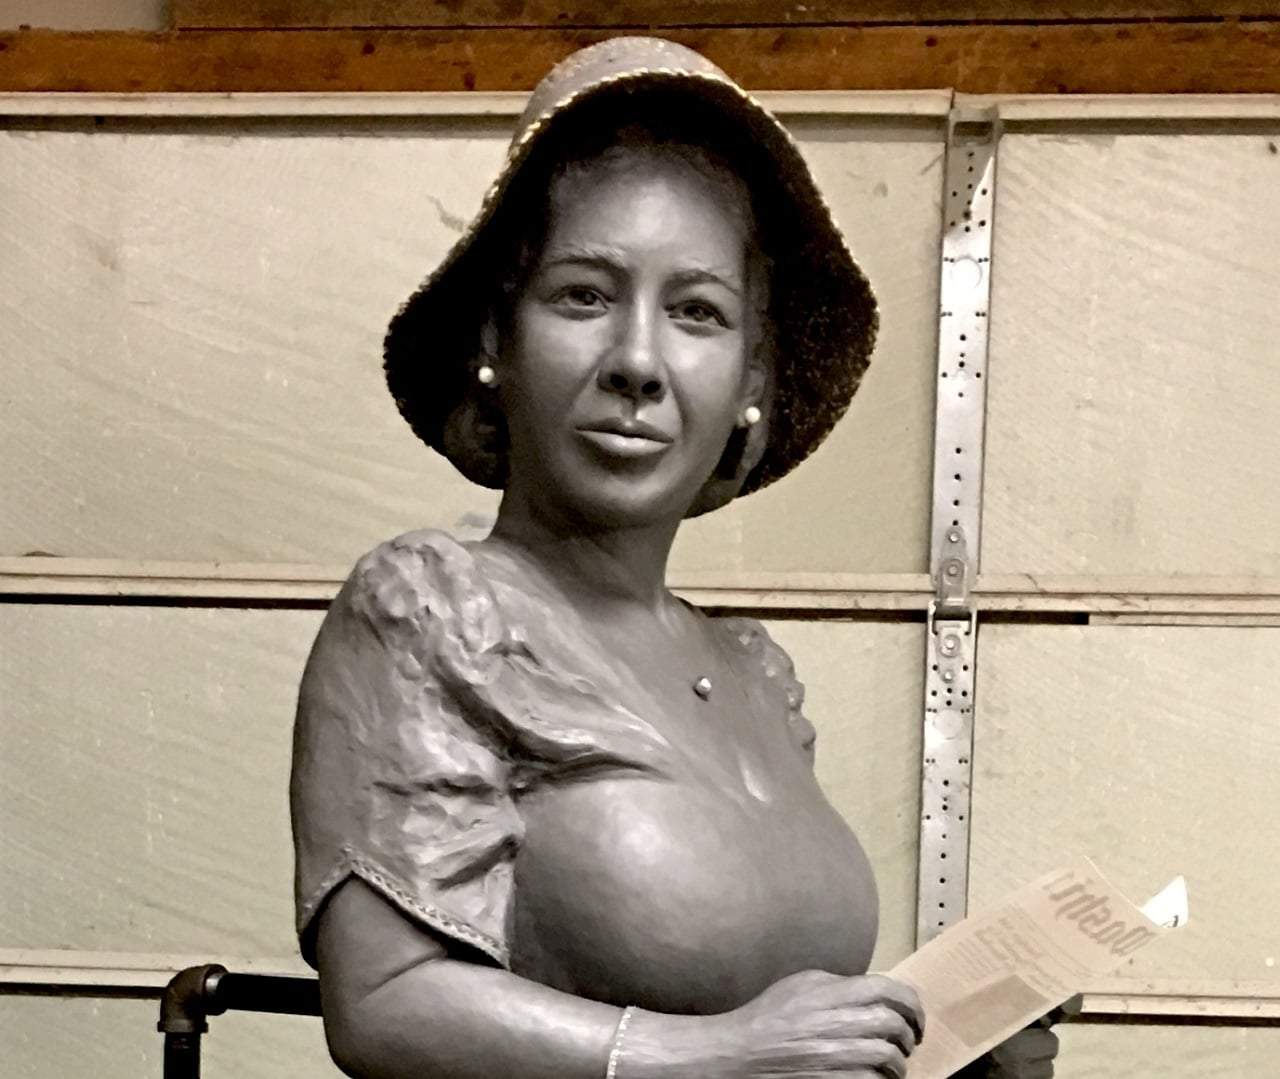 Alice Allison Dunnigan was the first black female reporter to cover the White House